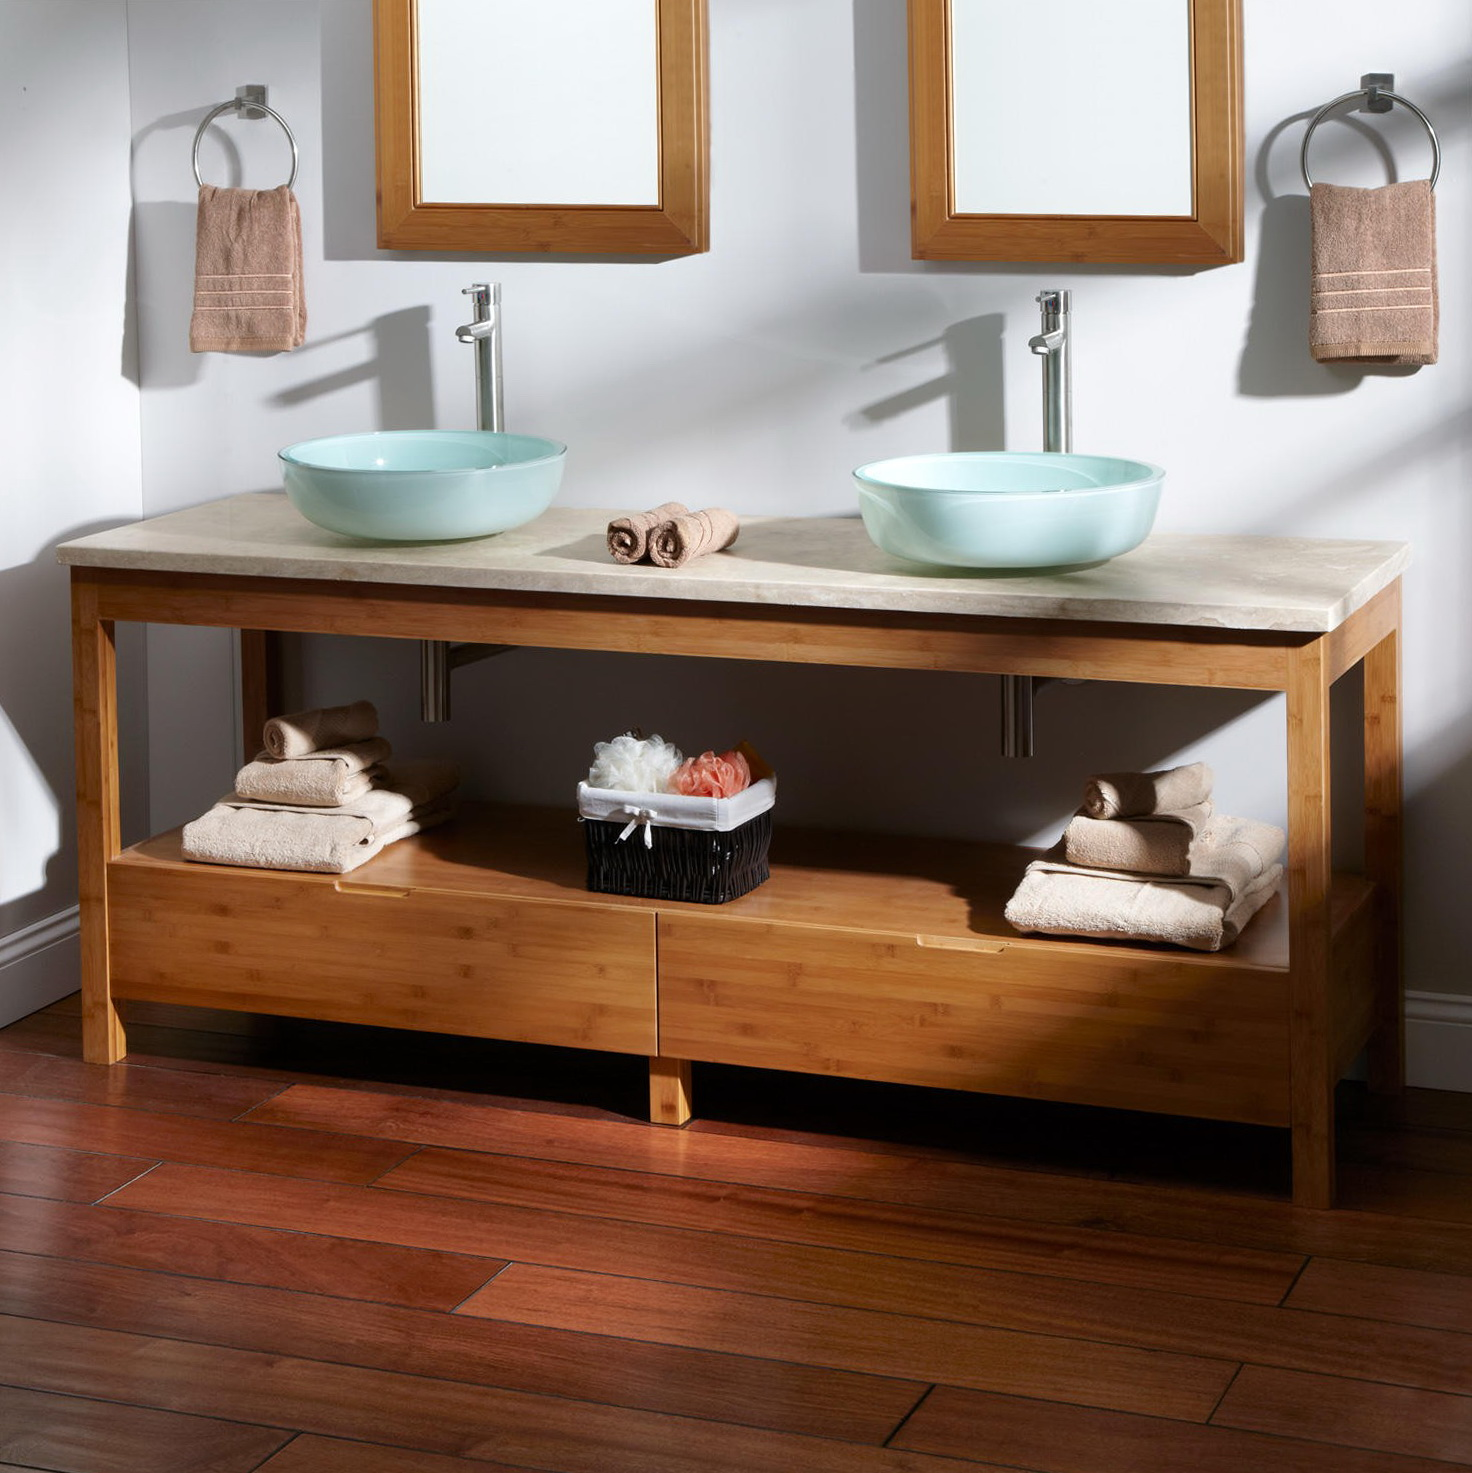 Home Depot Double Vanity Bathroom